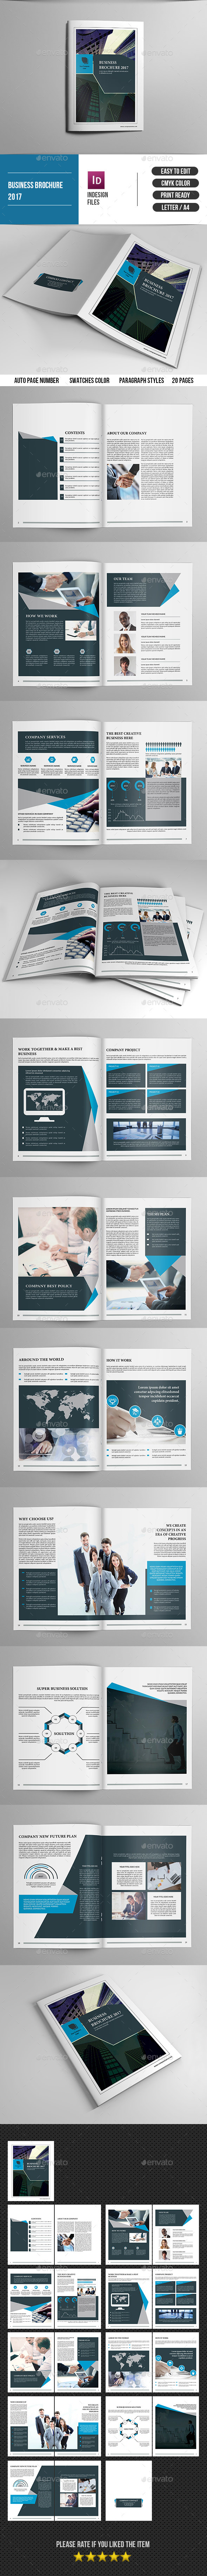 Business Brochure Template-V416 - Corporate Brochures